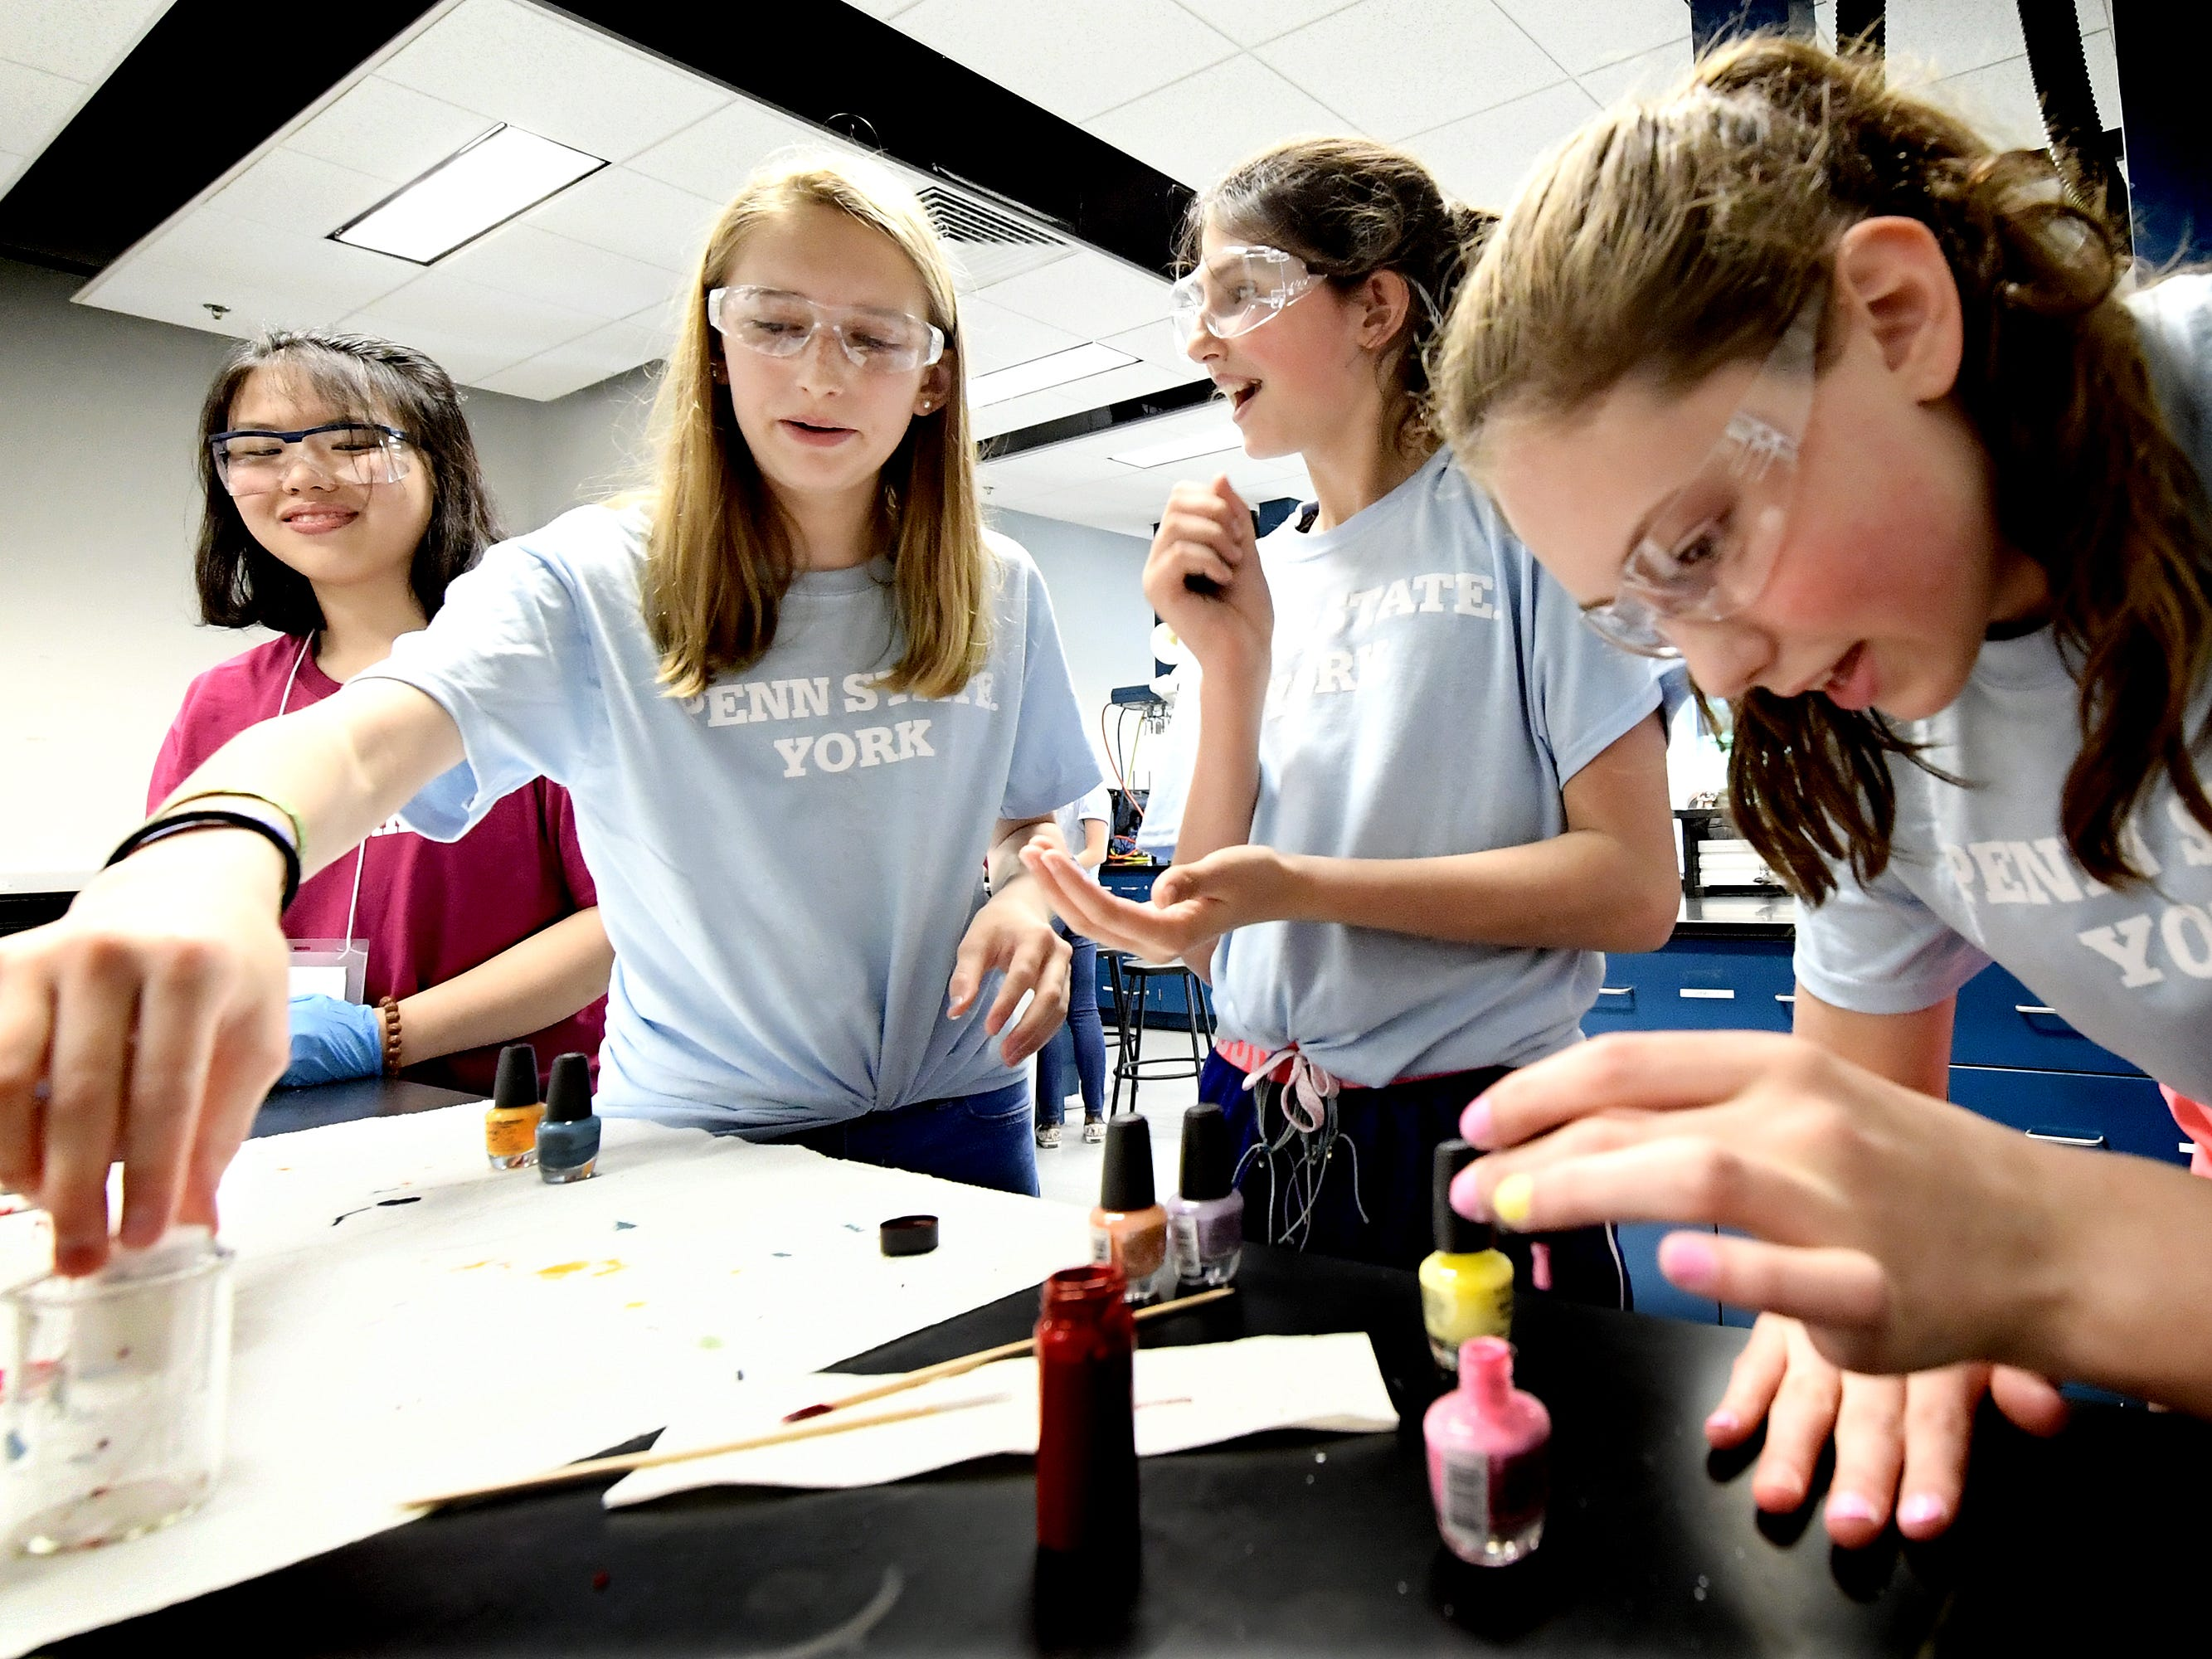 Penn State student aide Jenny Du, left, watches as Dallastown Middle School students, from left, Kaitlyn Bailey, Emerson Dunker and Elliot Post-Kulisiewicz make and sample nail polish during The Science of Color in Cosmetics workshop at the Pathways to Your Future: Exploring STEAM Careers event at Penn State York Friday, May 10, 2019. Over 200 seventh-grade girls from 28 area schools participated in the program which highlighted science, technology, engineering, art, and mathematics (STEAM) careers. Industry leaders administered the workshops during the program, which is in its 23rd year. Bill Kalina photo